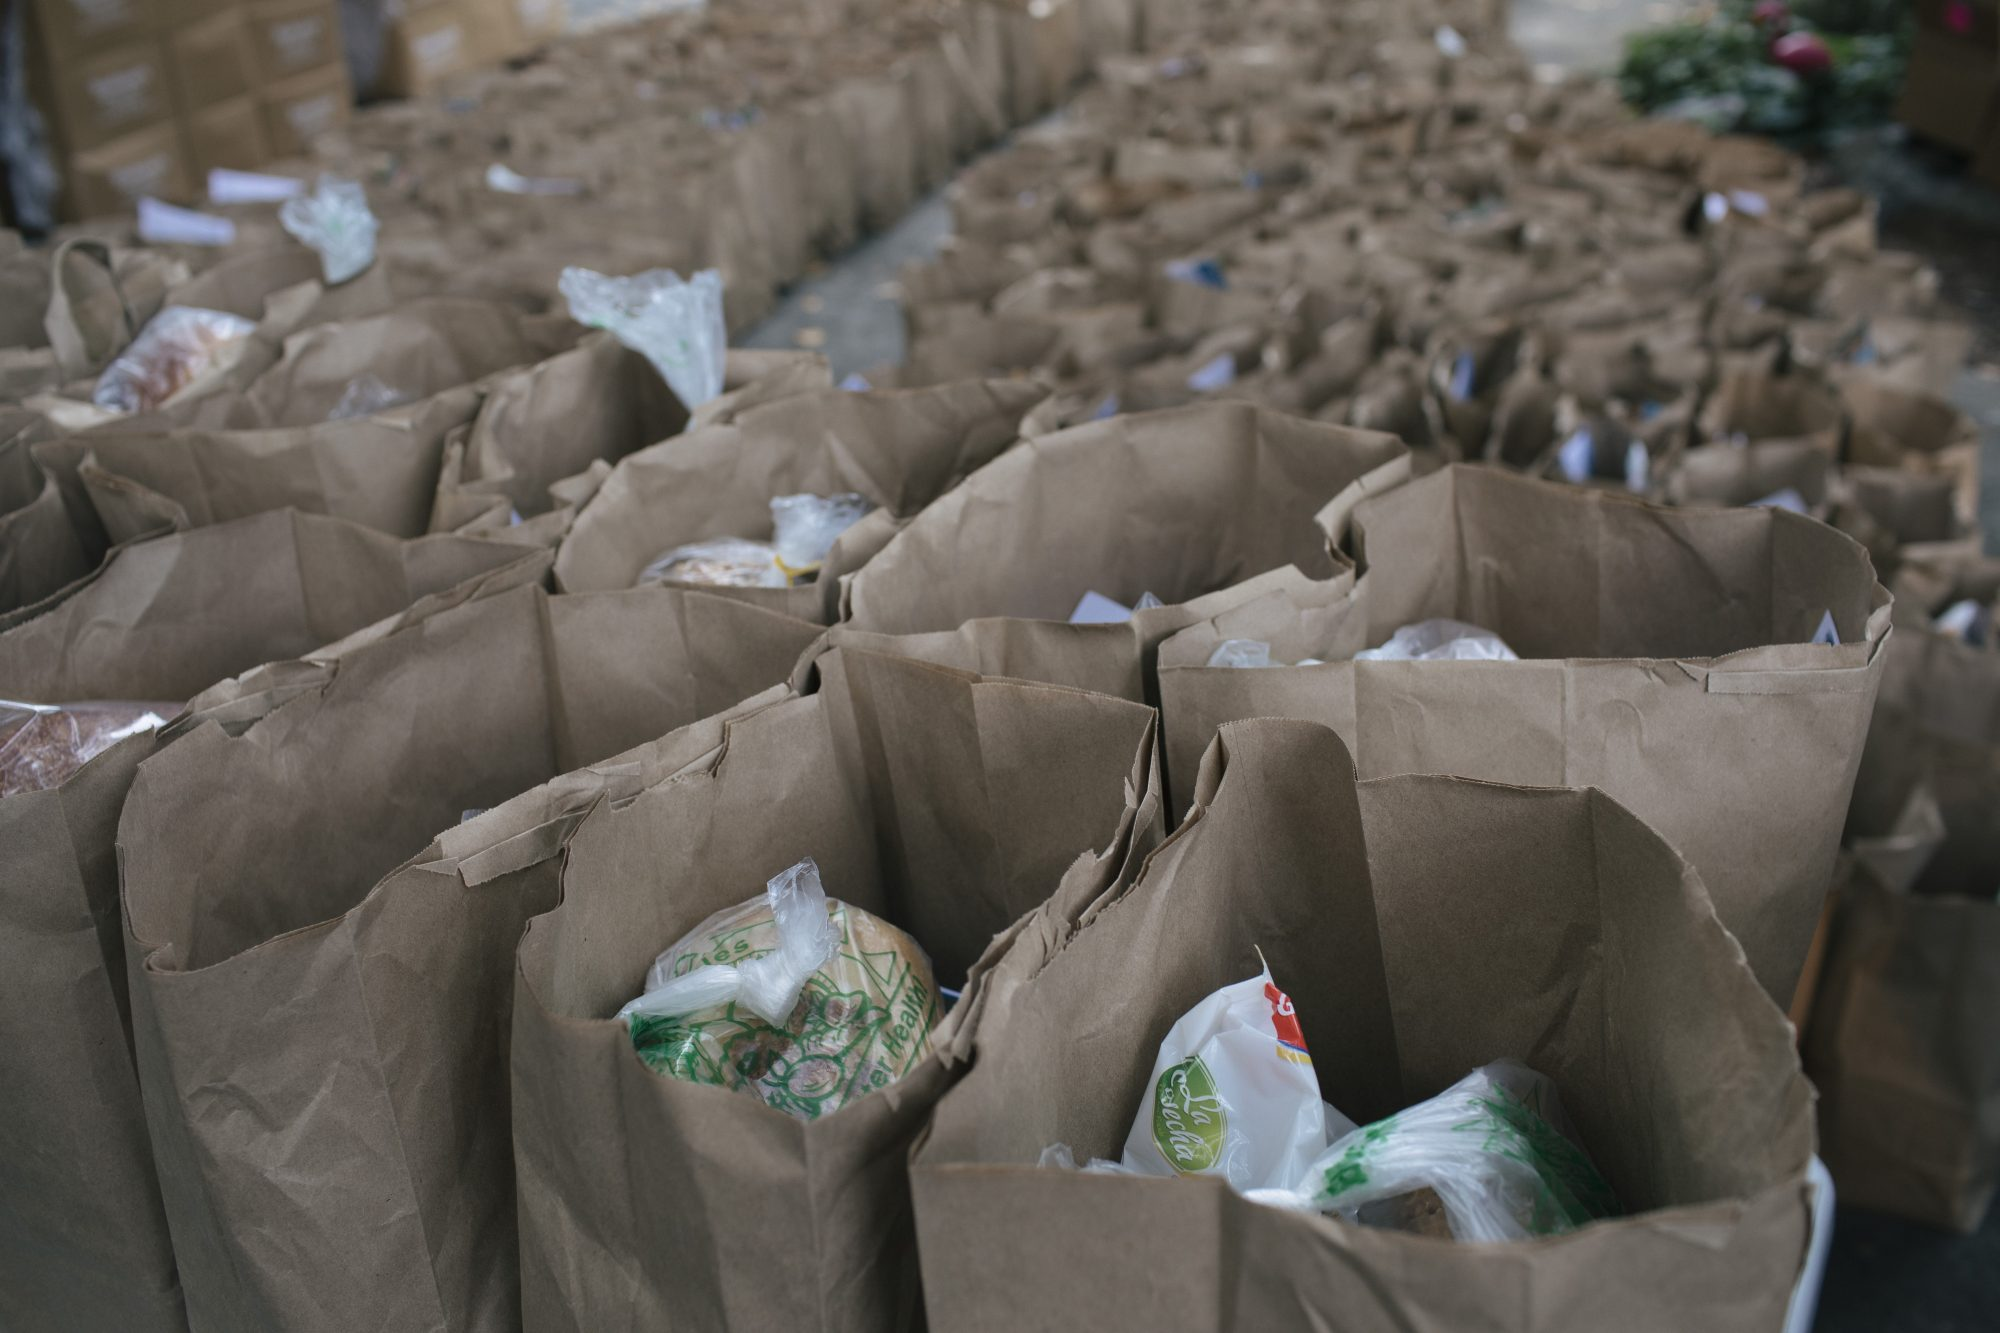 paper bags filled with food donations